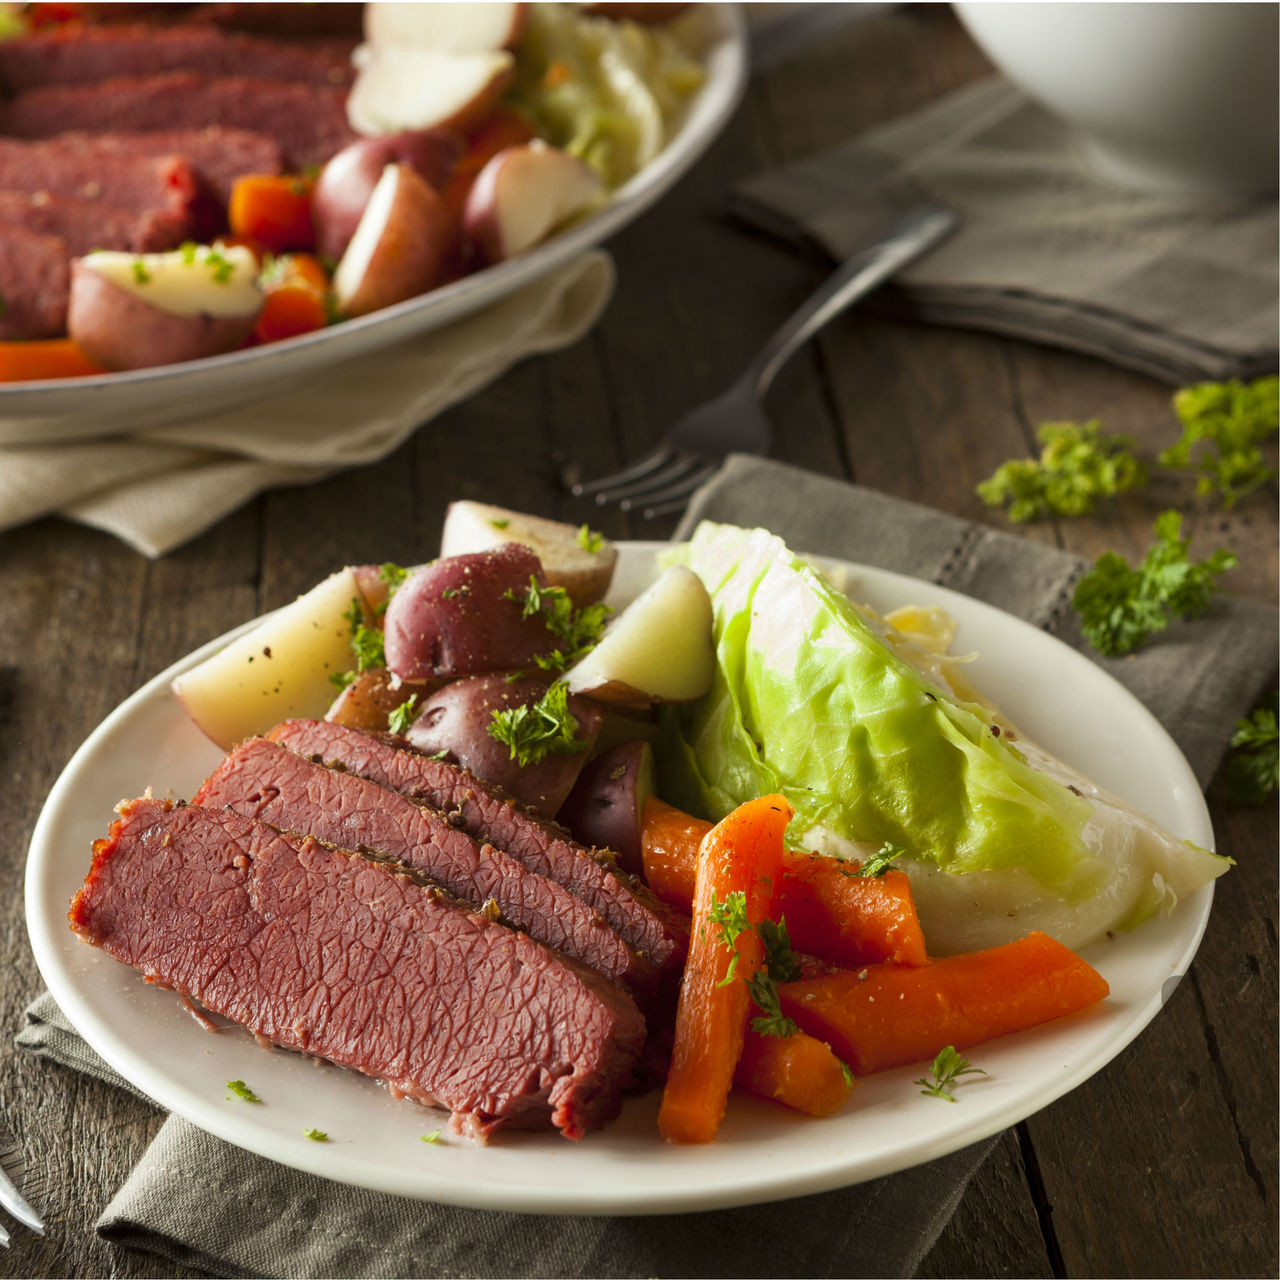 Homemade Corned Beef - Curing and Cooking